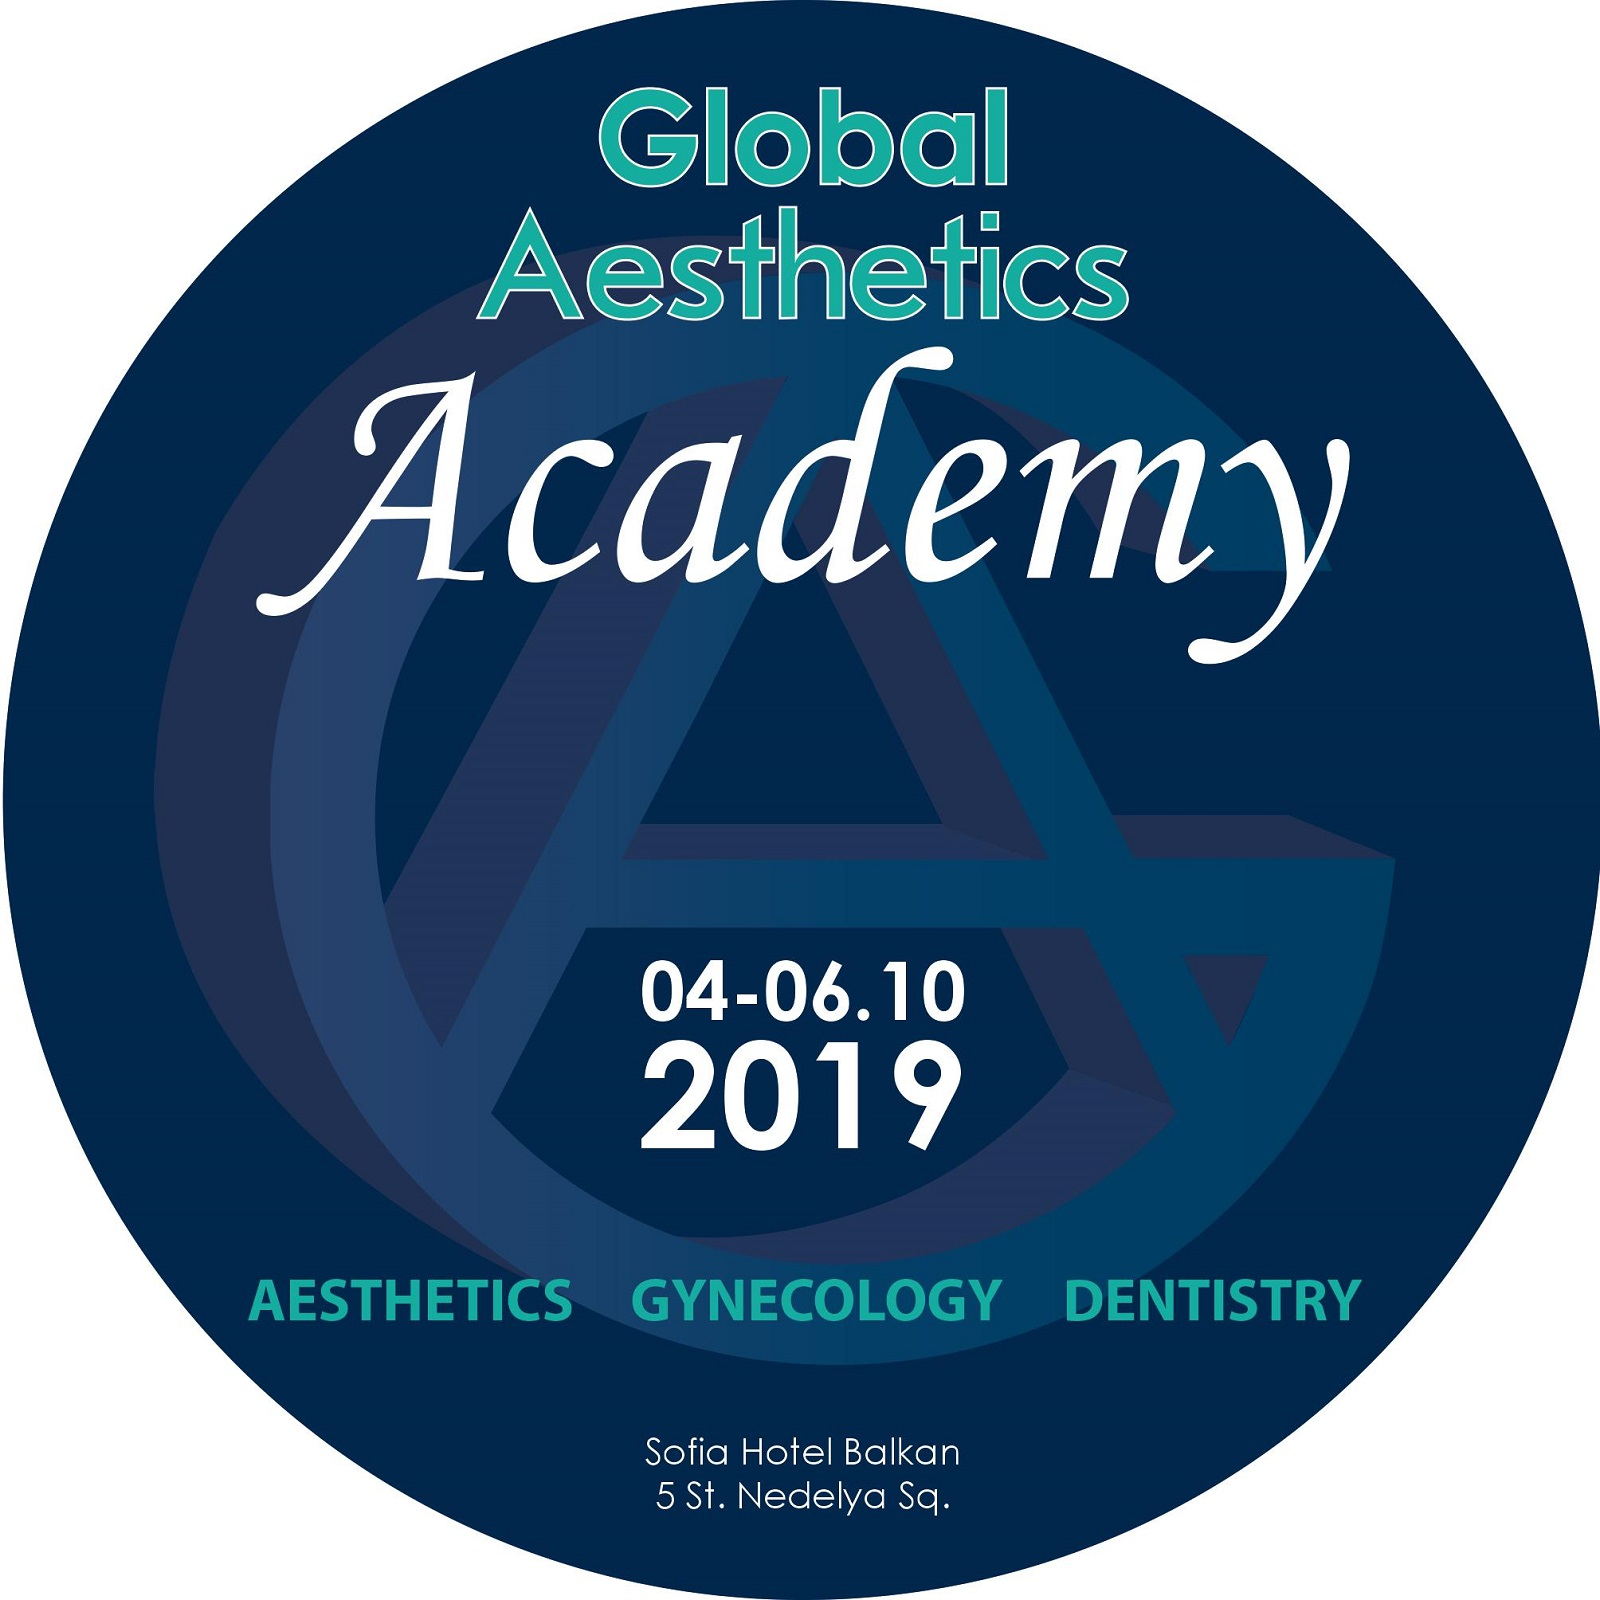 4 иновации на Global Aesthetics Academy 2019